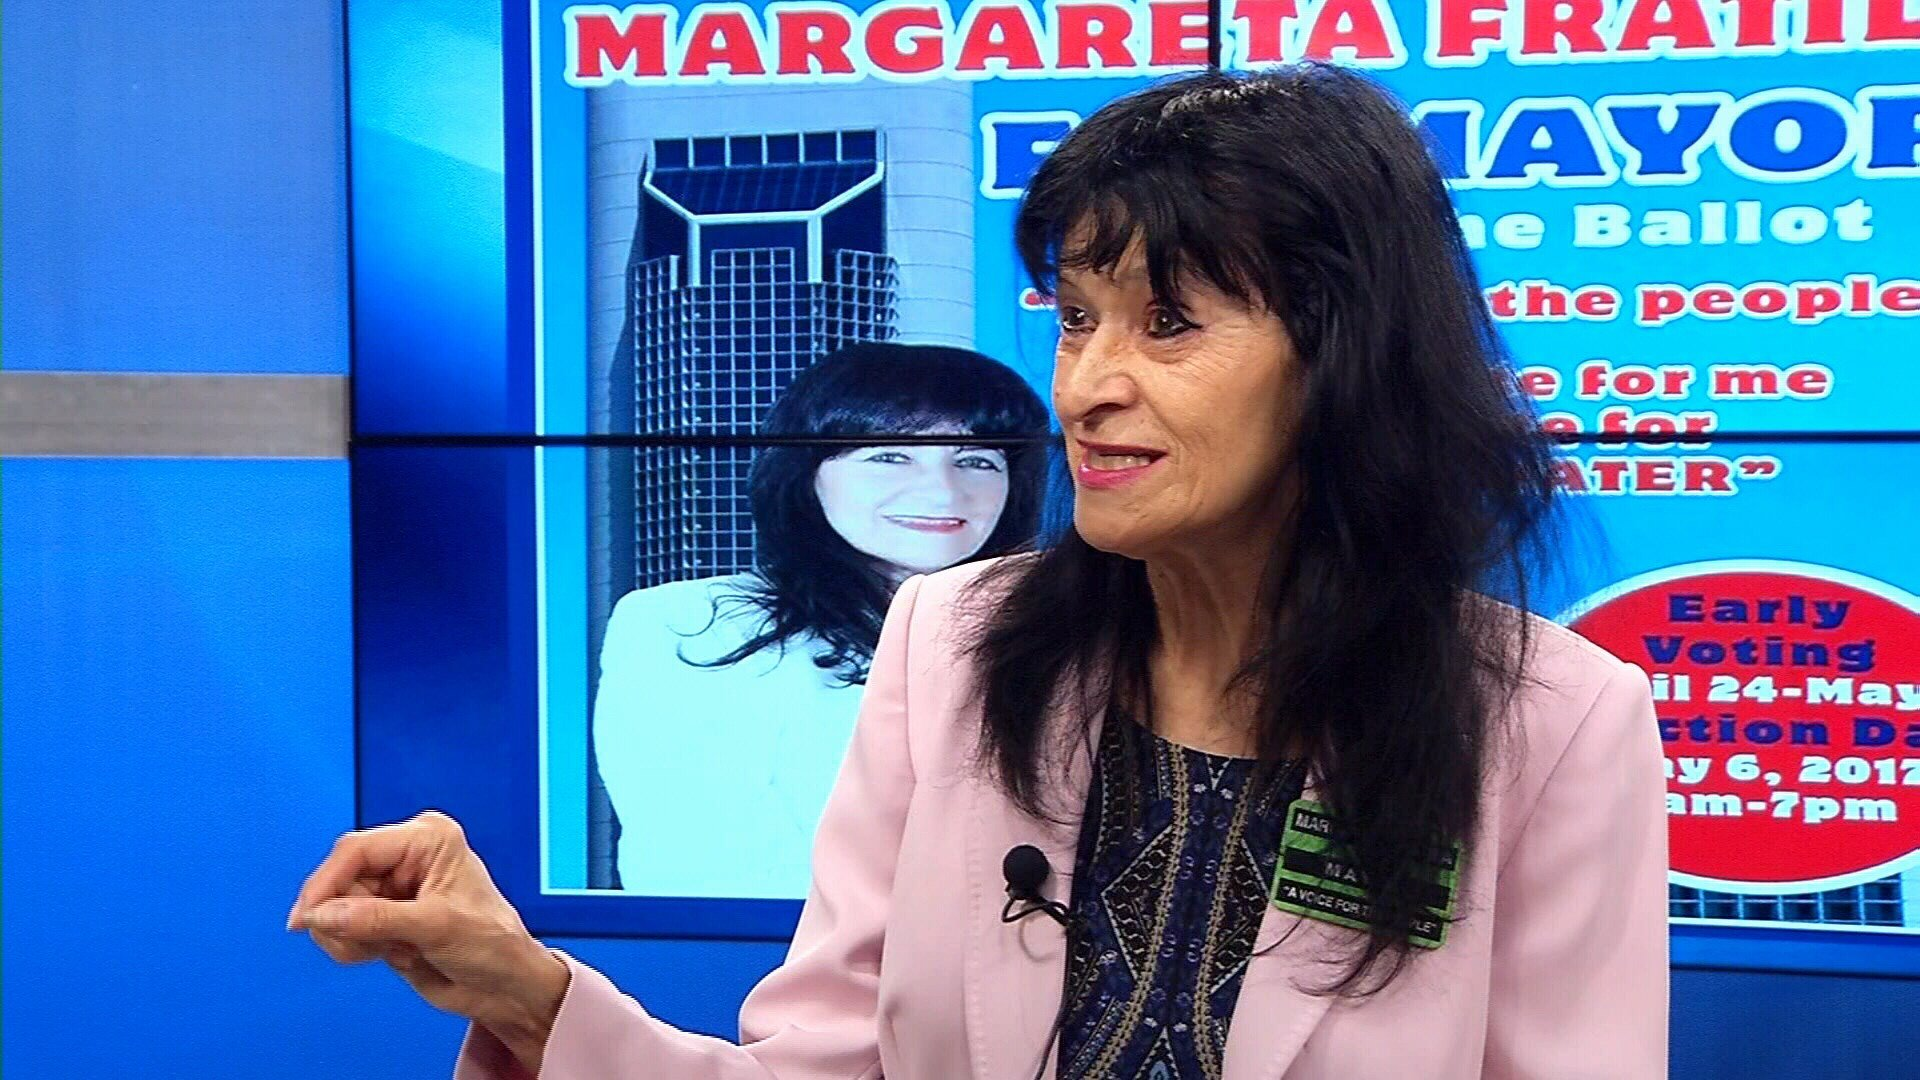 Mayoral candidate Margareta Fratila admits information on her flyer is false and blames the mistake on a printing error (KRIS 6 News).